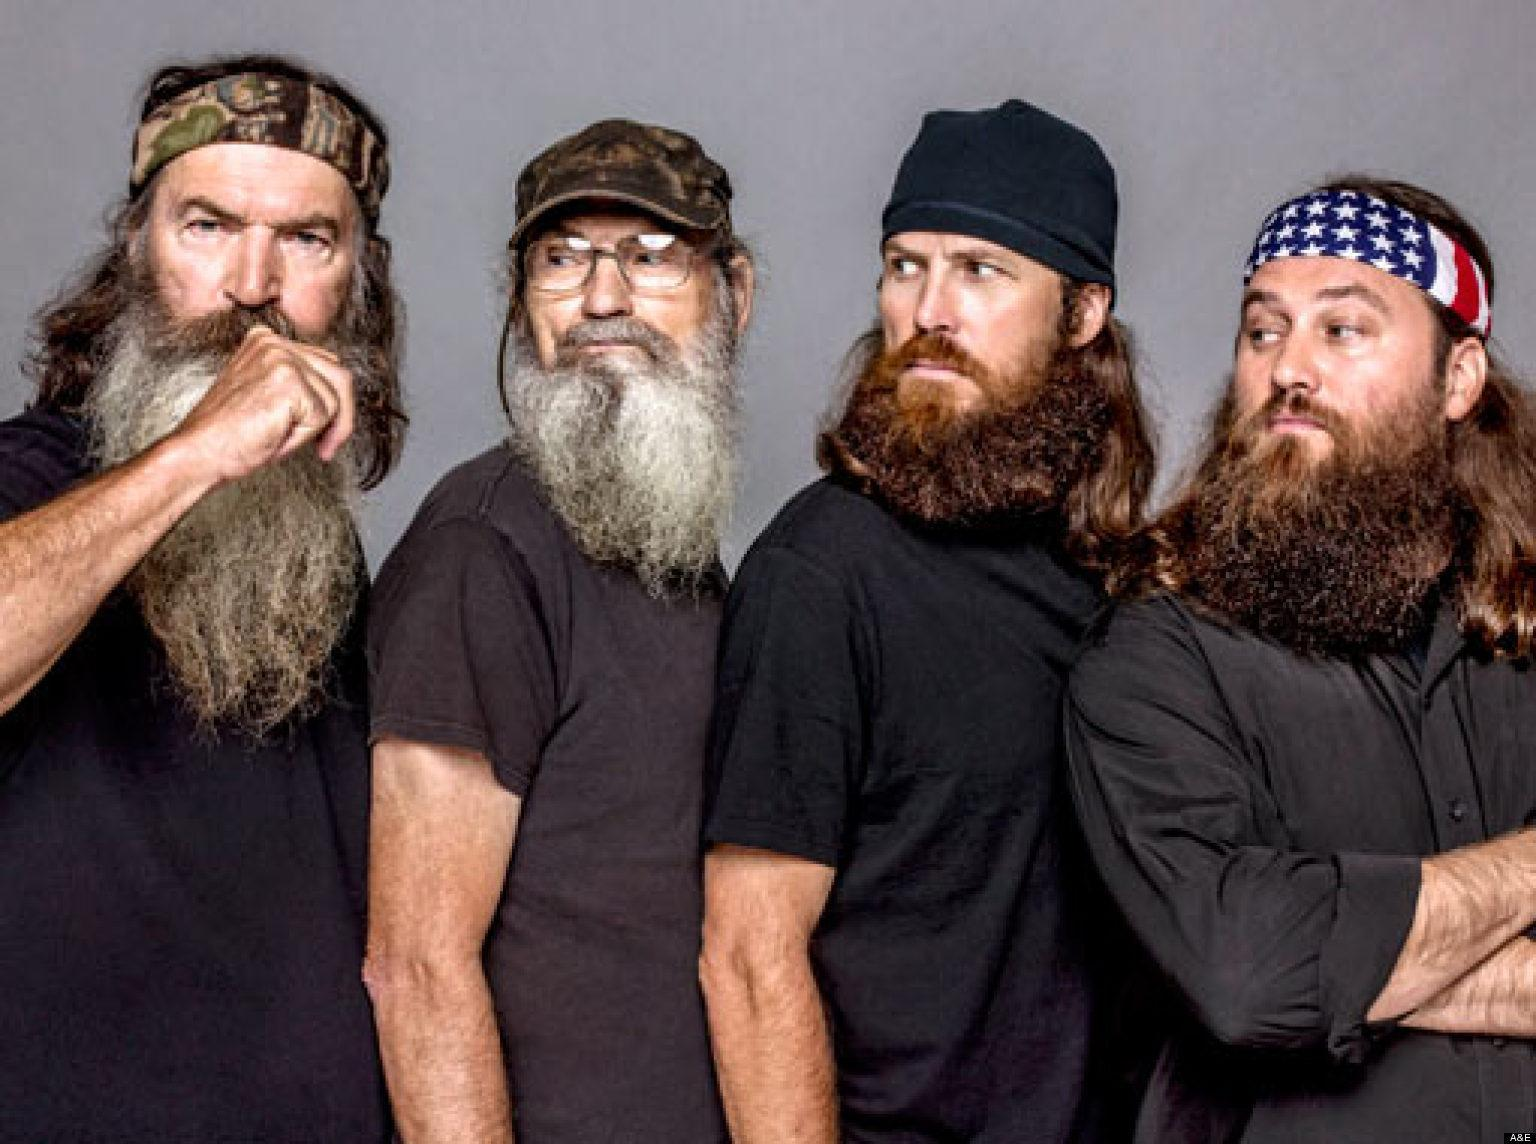 which duck dynasty character are you?